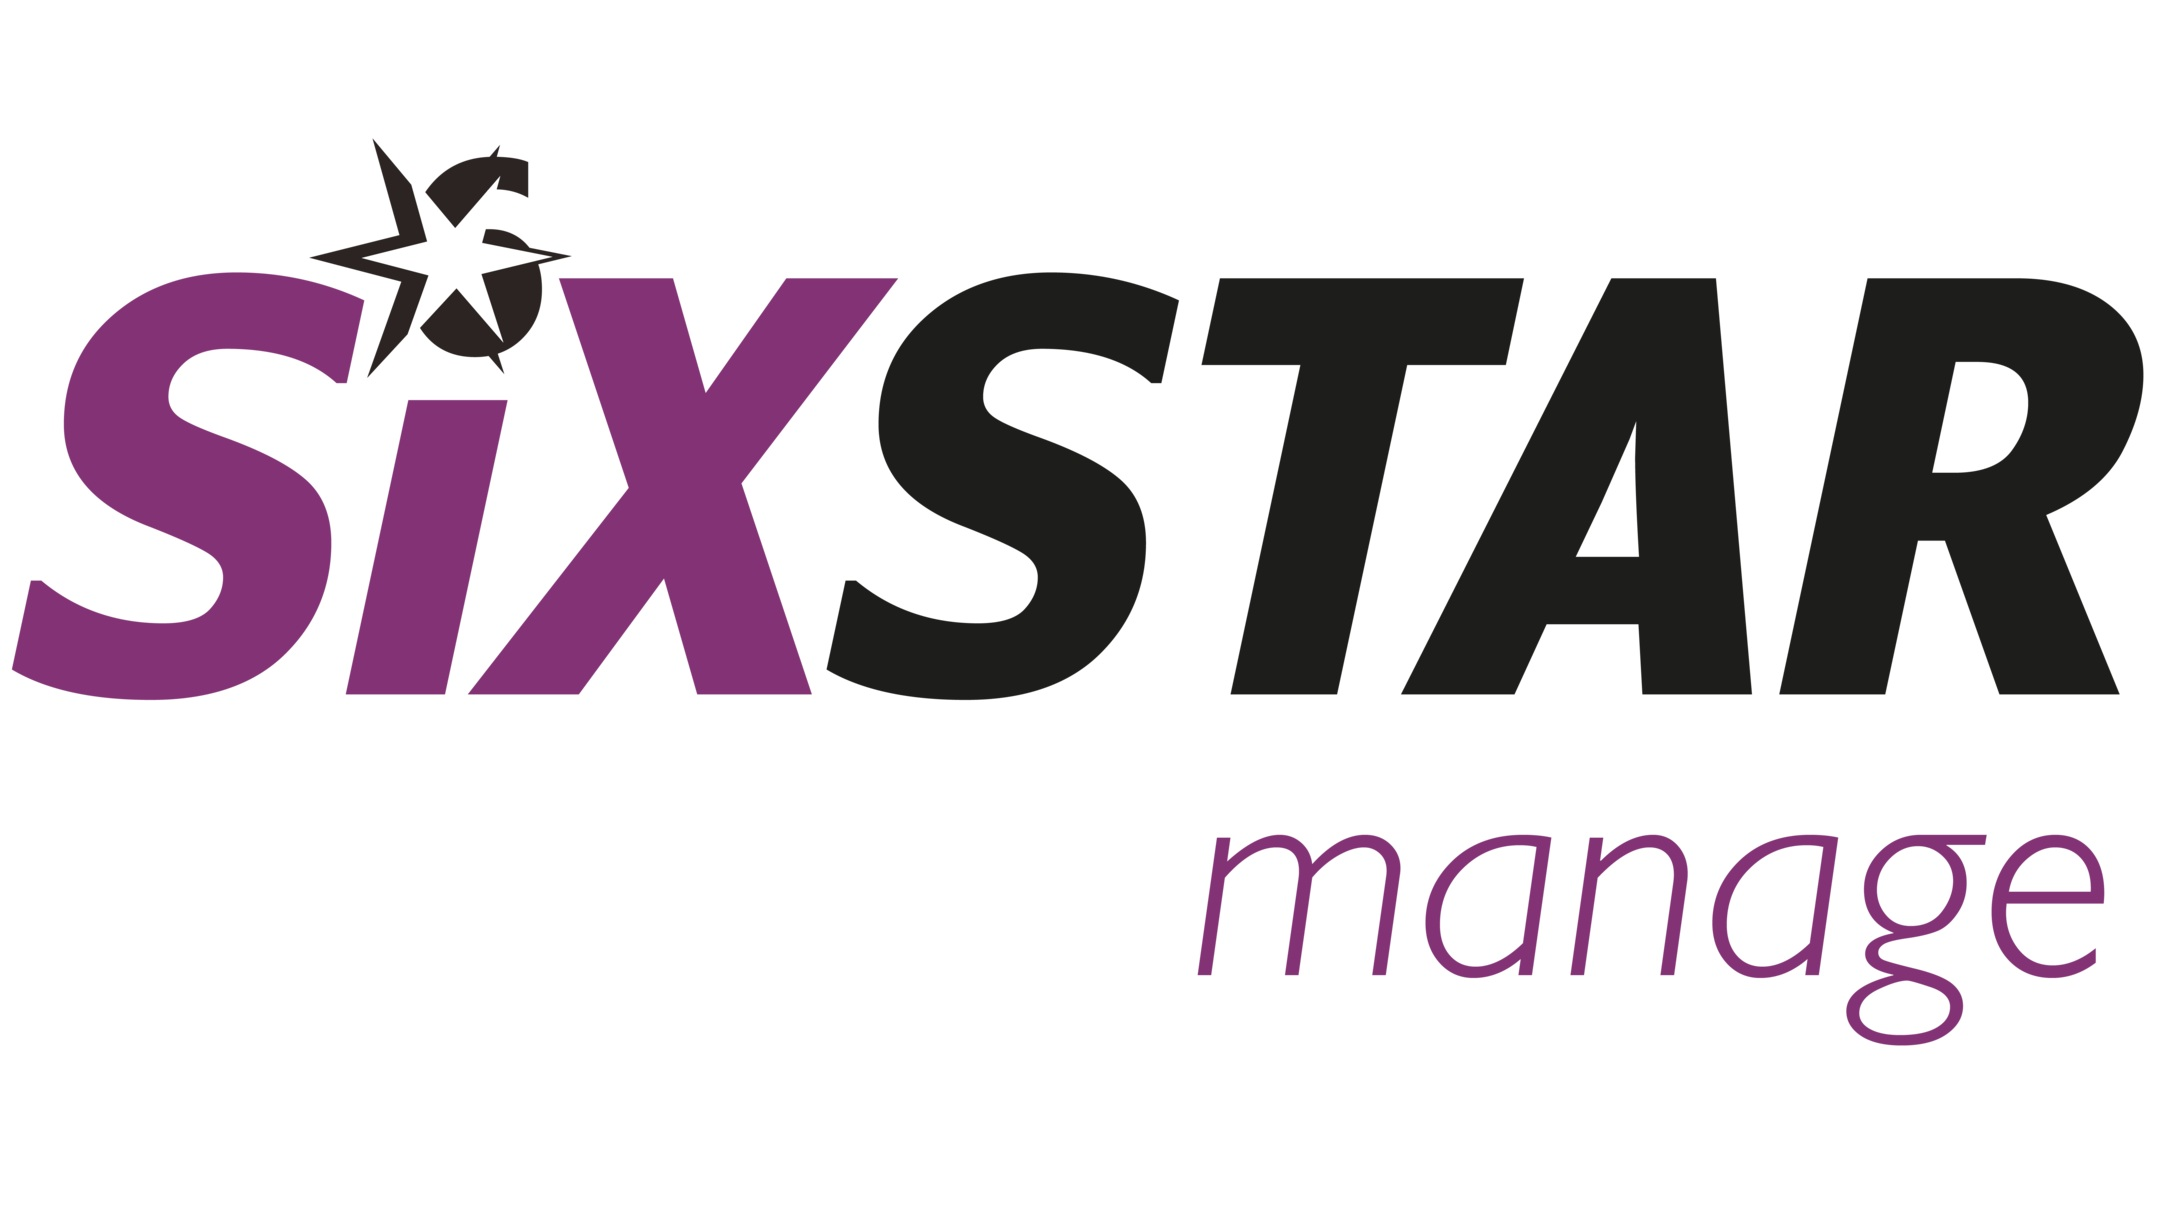 Sixstar Product Manage.png